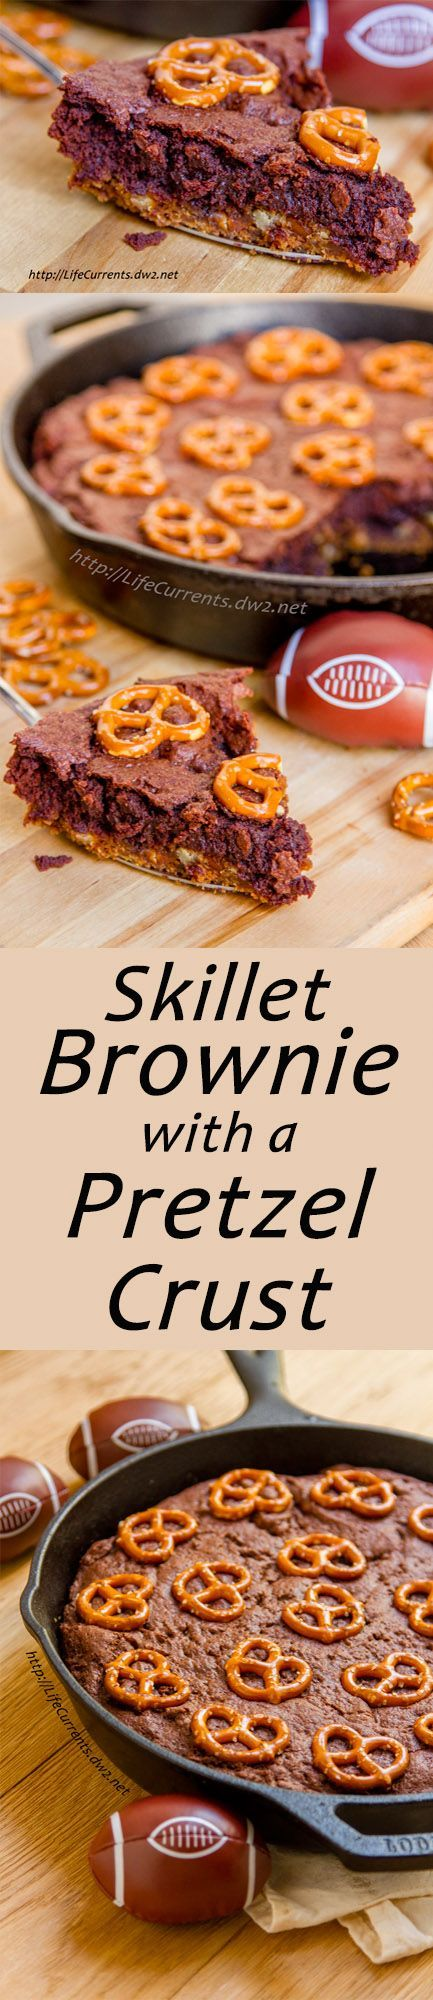 Skillet Brownies with Pretzel Crust: this tailgating snacks month dessert is totally worthy of tailgating and football parties, I mean you've got a big pretzel cookie crust topped with an espresso bittersweet brownie all baked in a skillet. Nosh on!